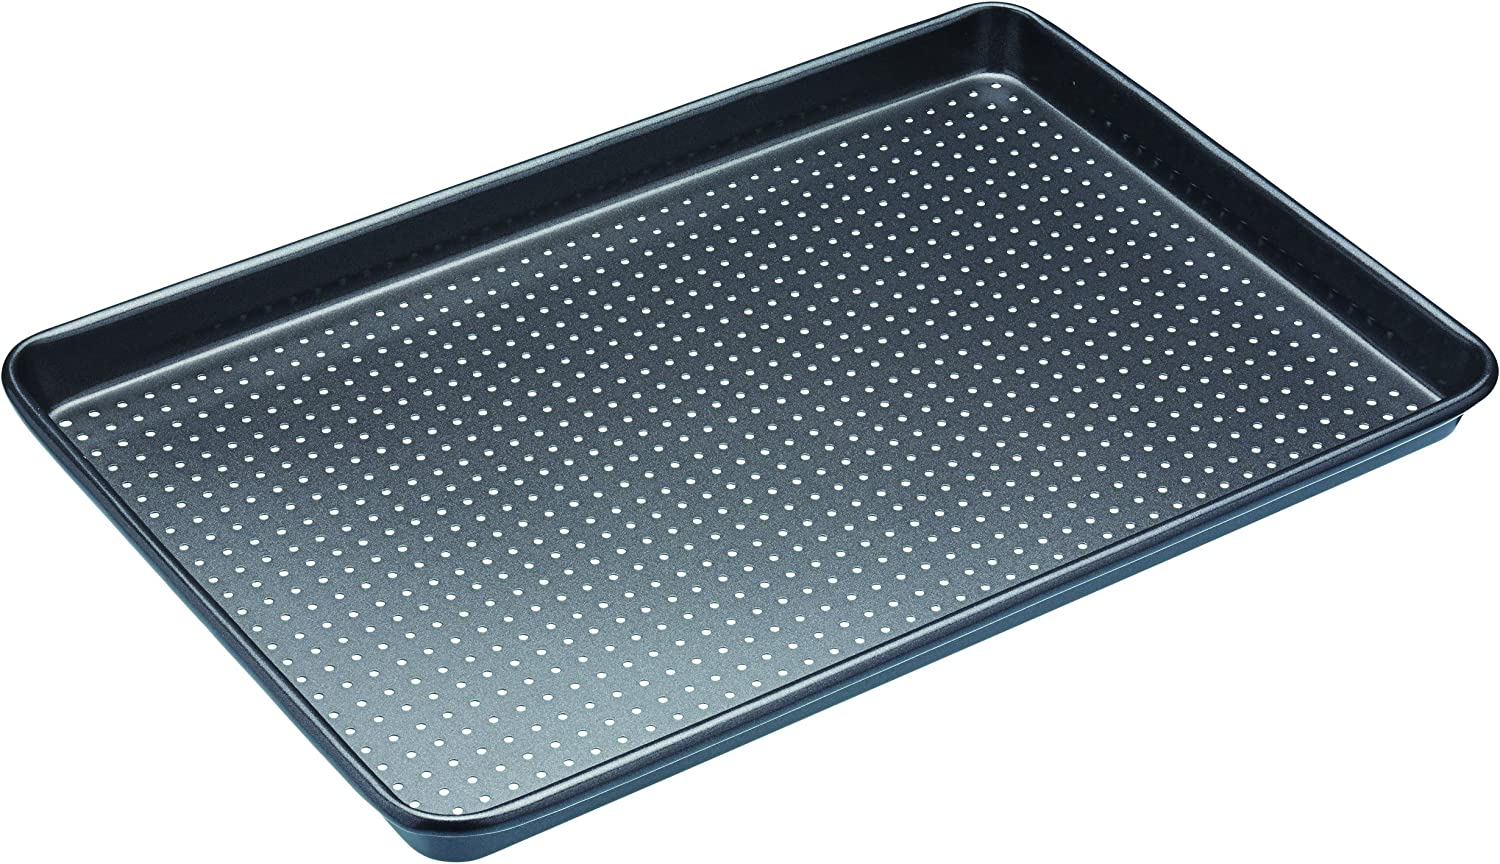 Kitchen craft KCMCCB3 - Molde perforado crusty bake, 39cm x 27cm x 2cm